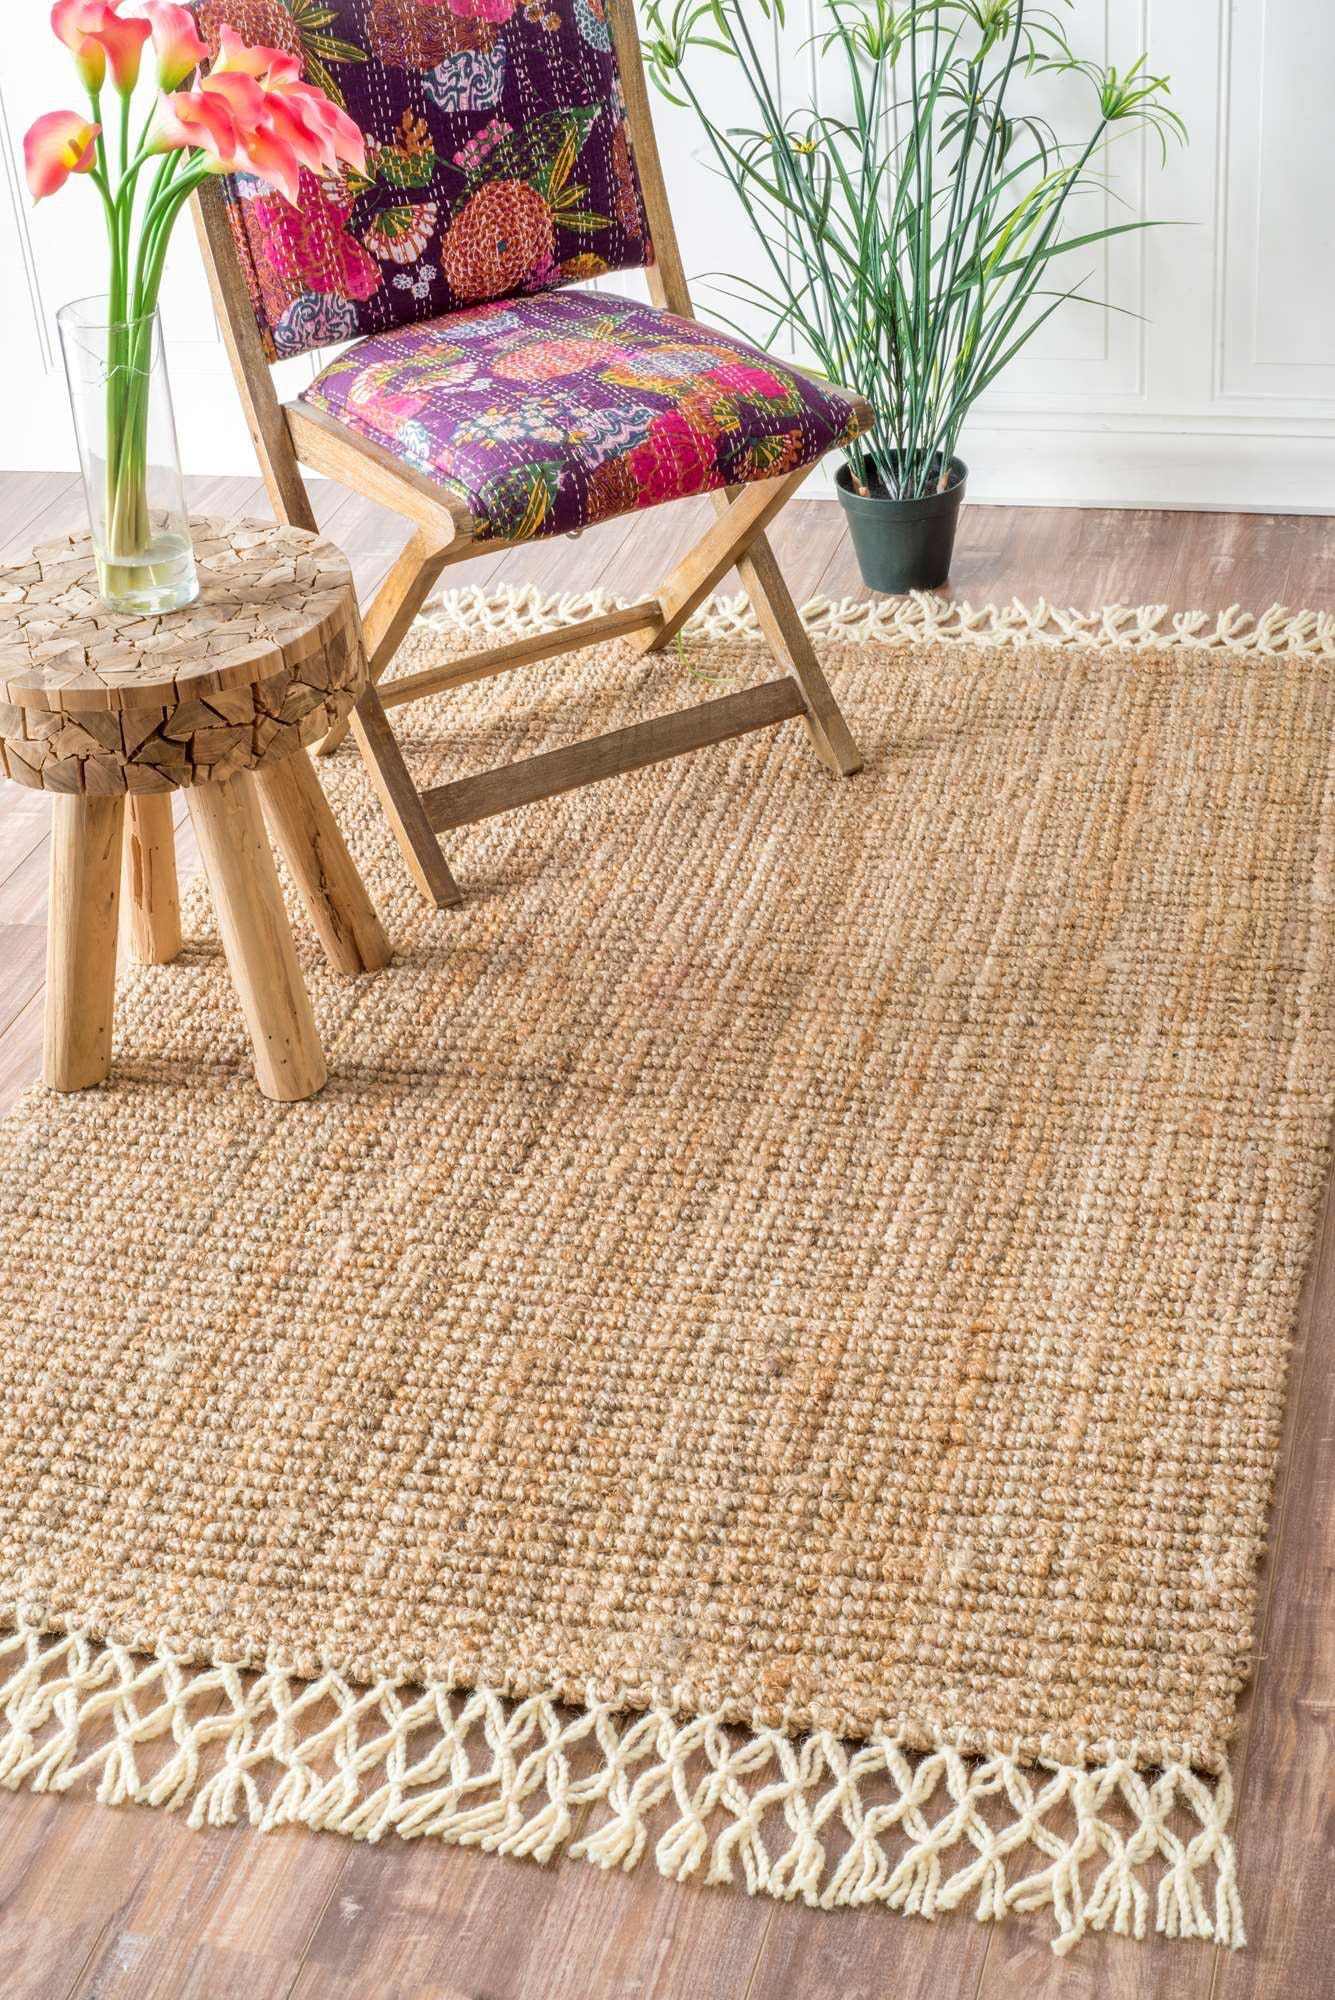 Ground Control 10 Area Rugs Under 100